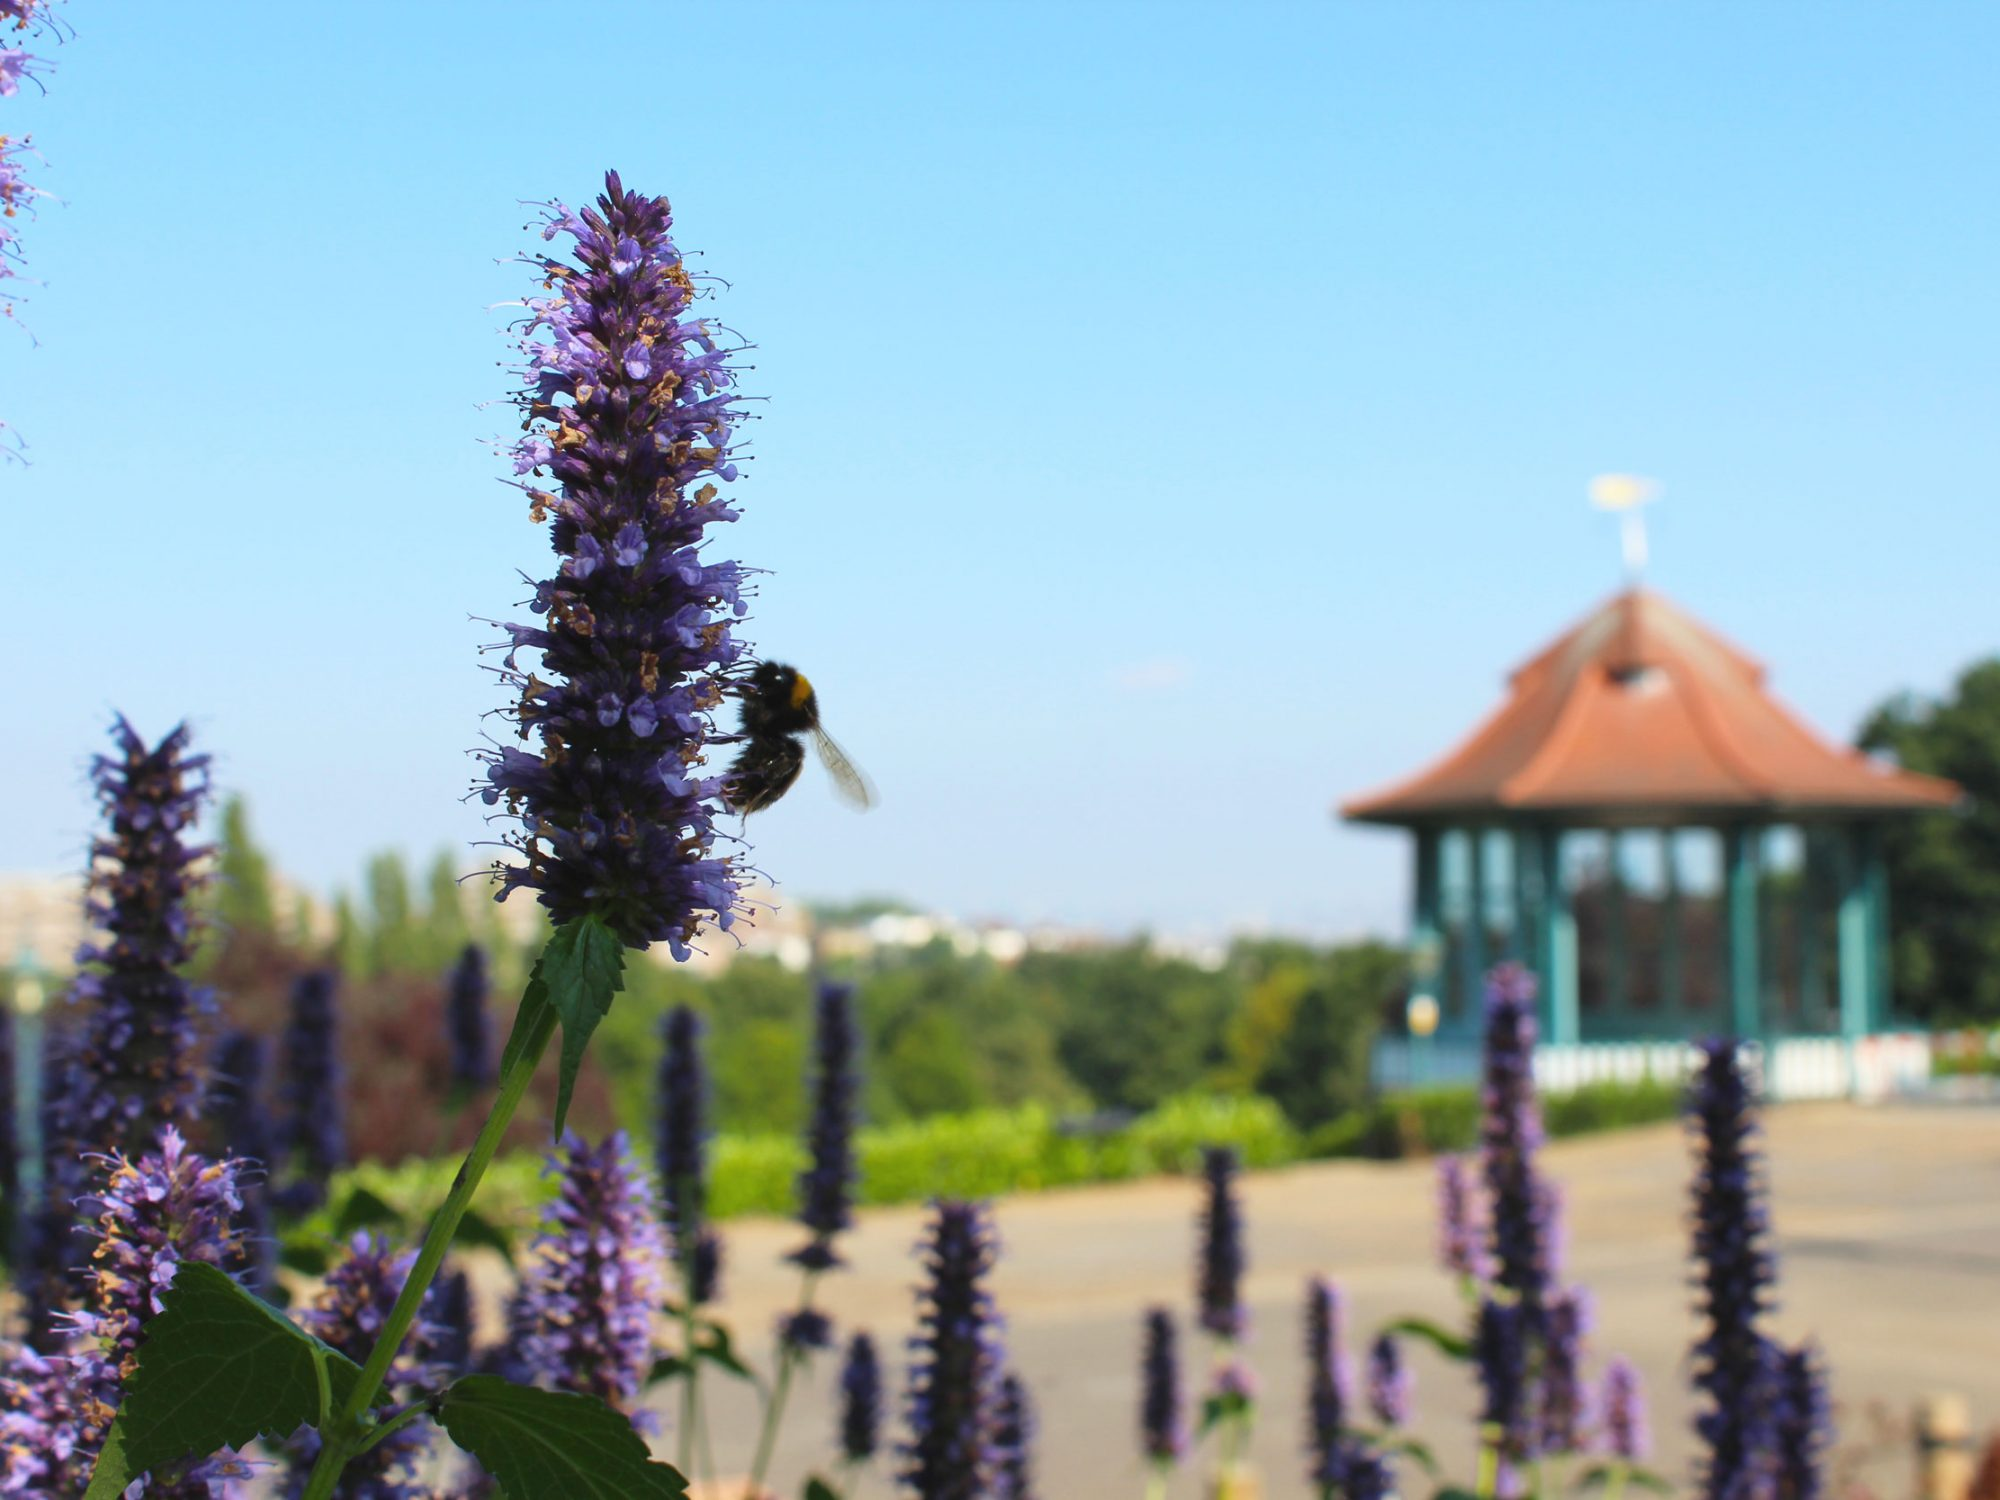 A close up of a stalk of tiny purple flowers with a bee on them. In the background is a bandstand in a garden with a blue sky